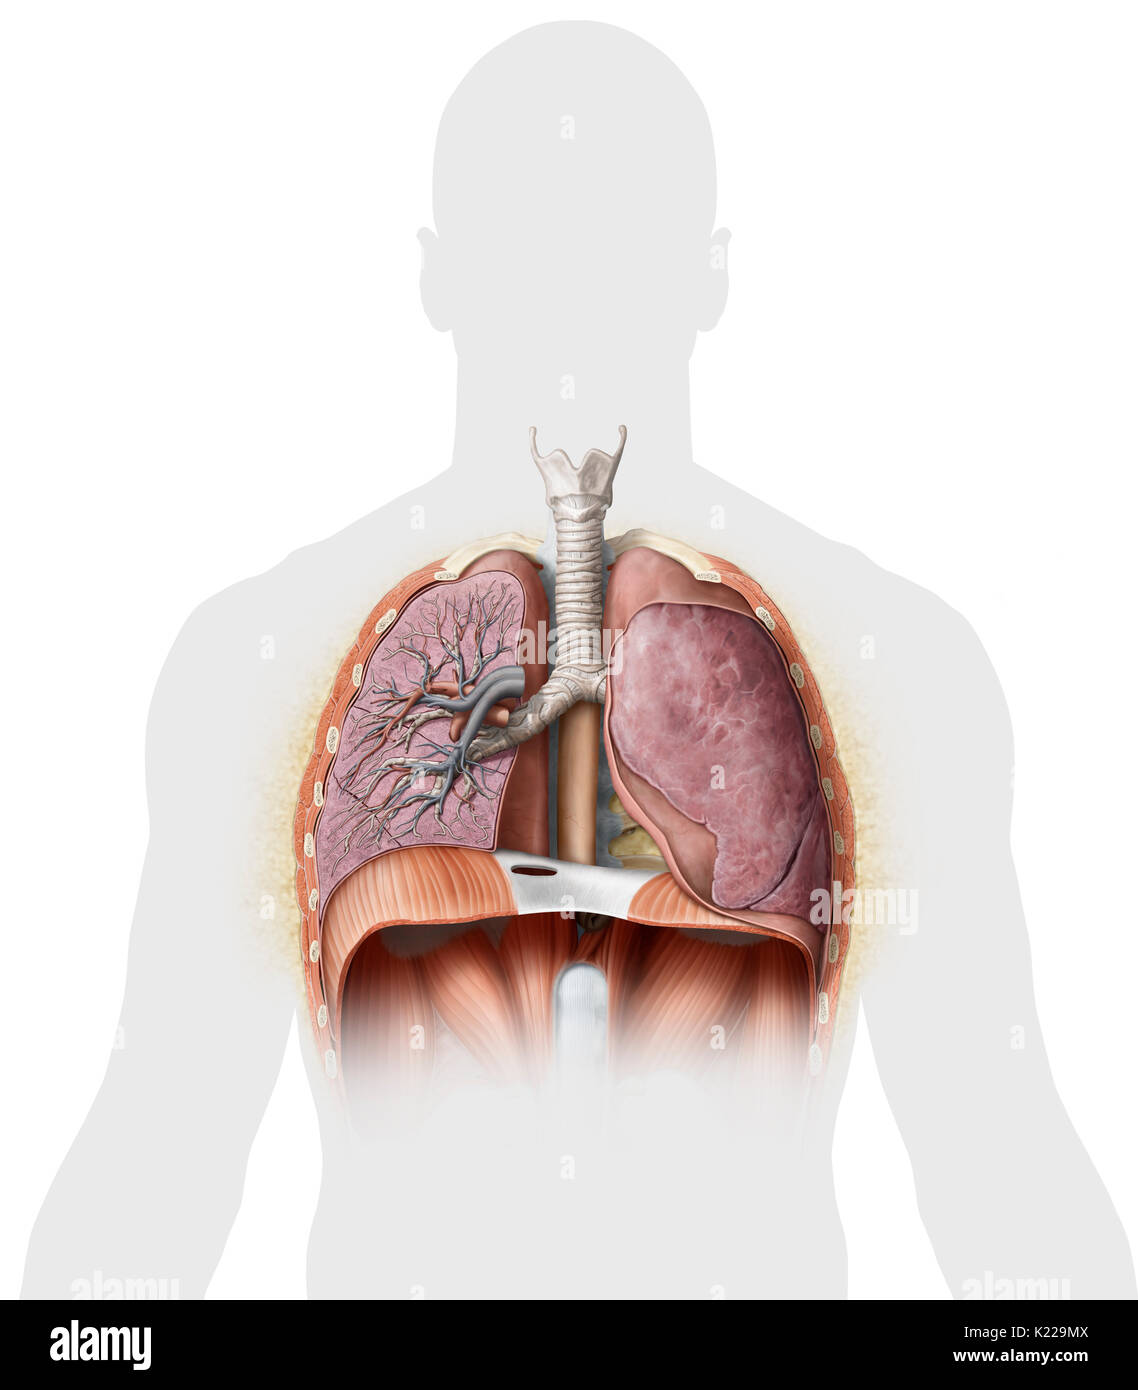 Cross section of the lower organs of the respiratory system stock this image shows a cross section of the lungs which reveals the main bronchus ccuart Gallery